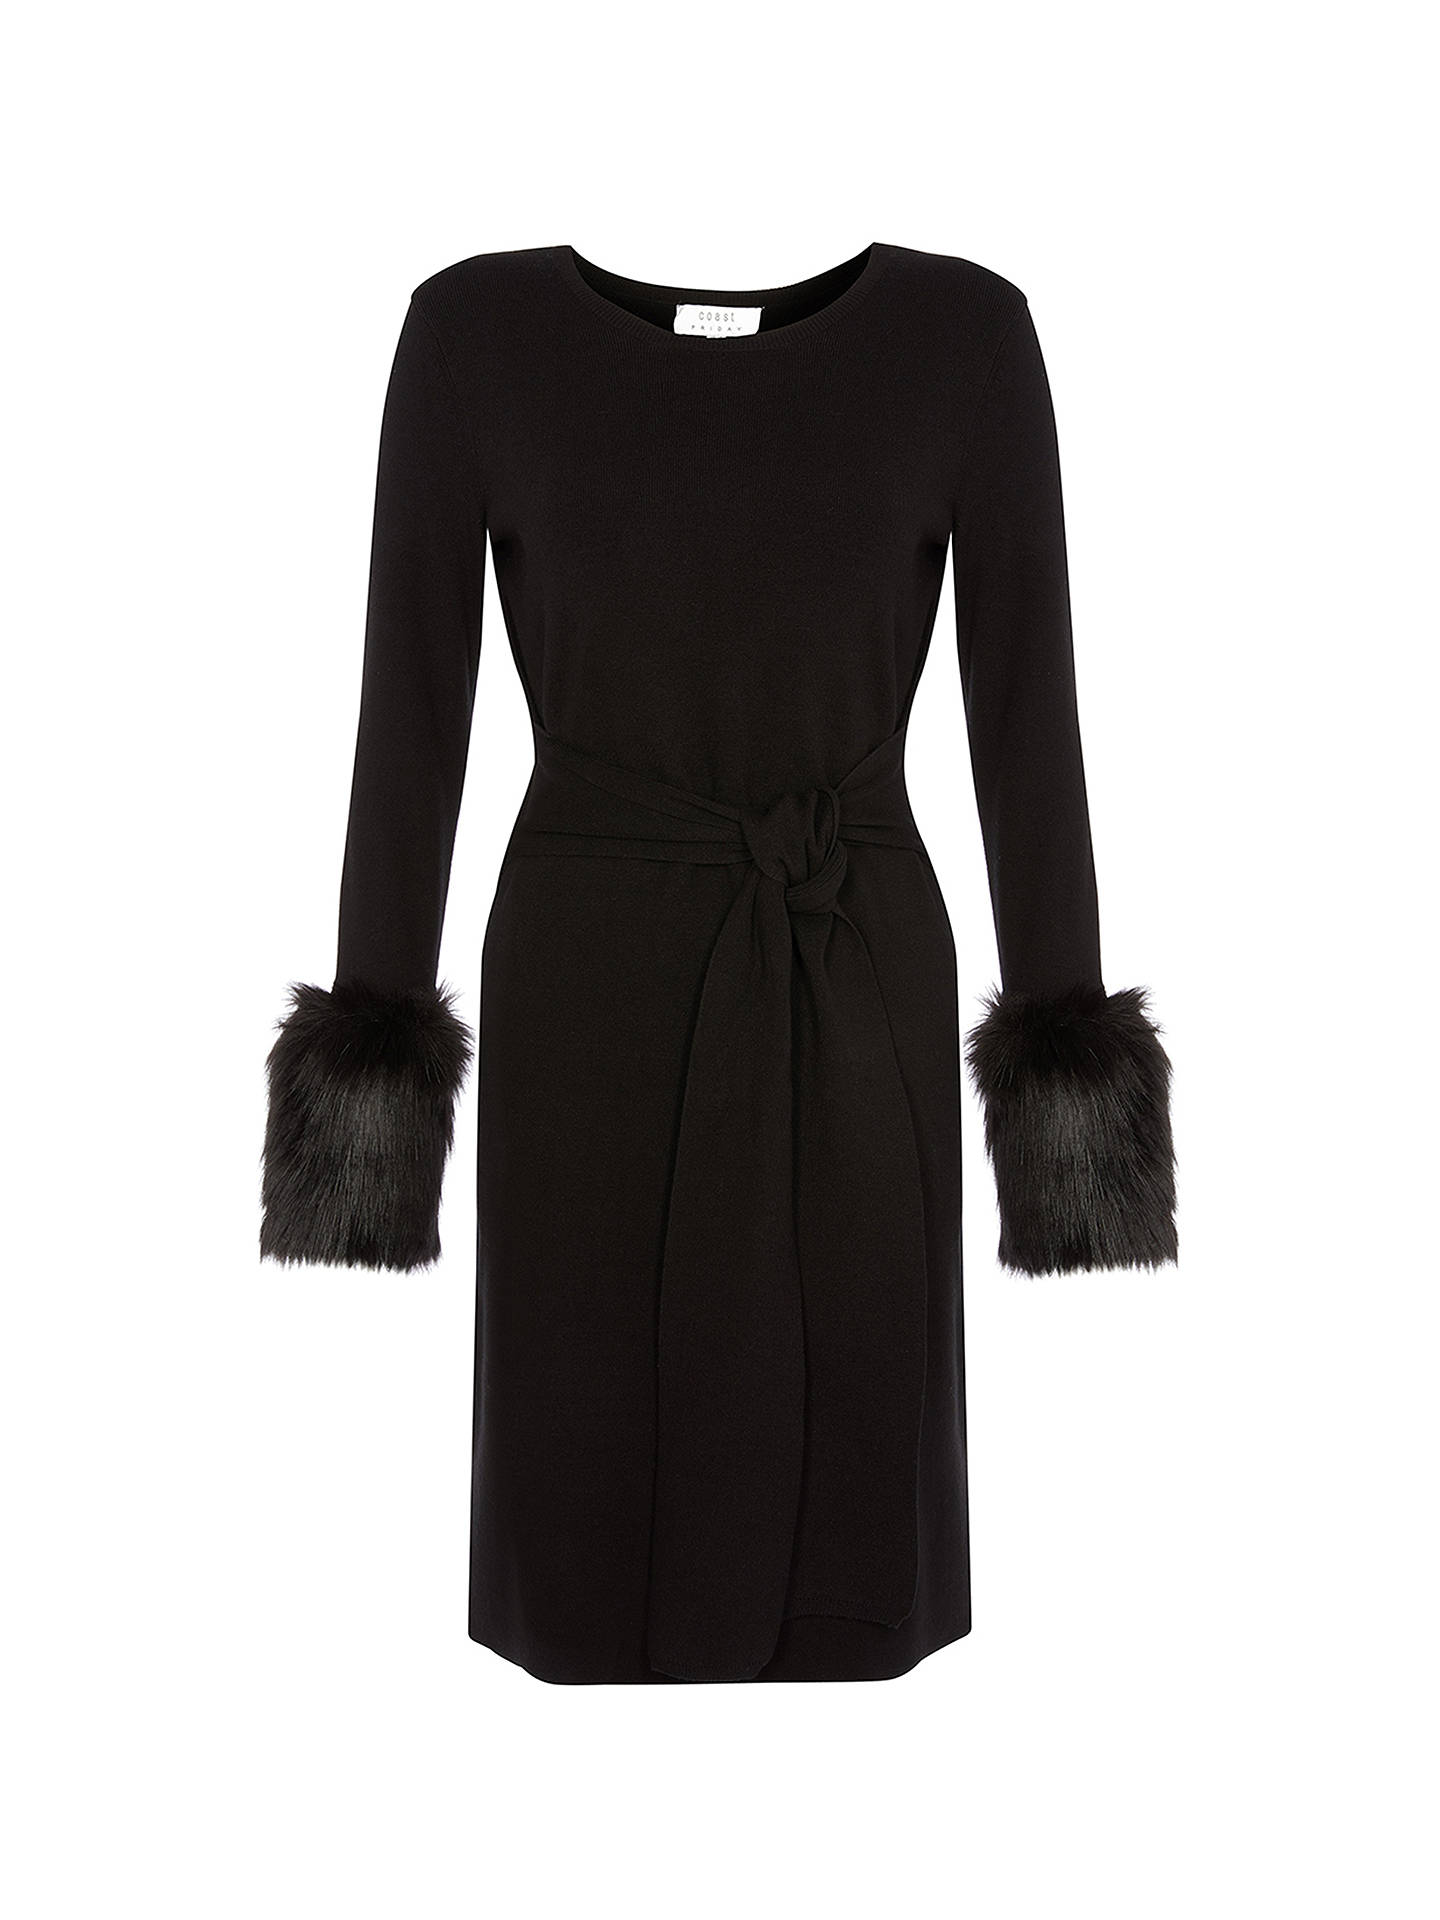 BuyCoast Tyra Faux Fur Knitted Dress, Black, 6 Online at johnlewis.com